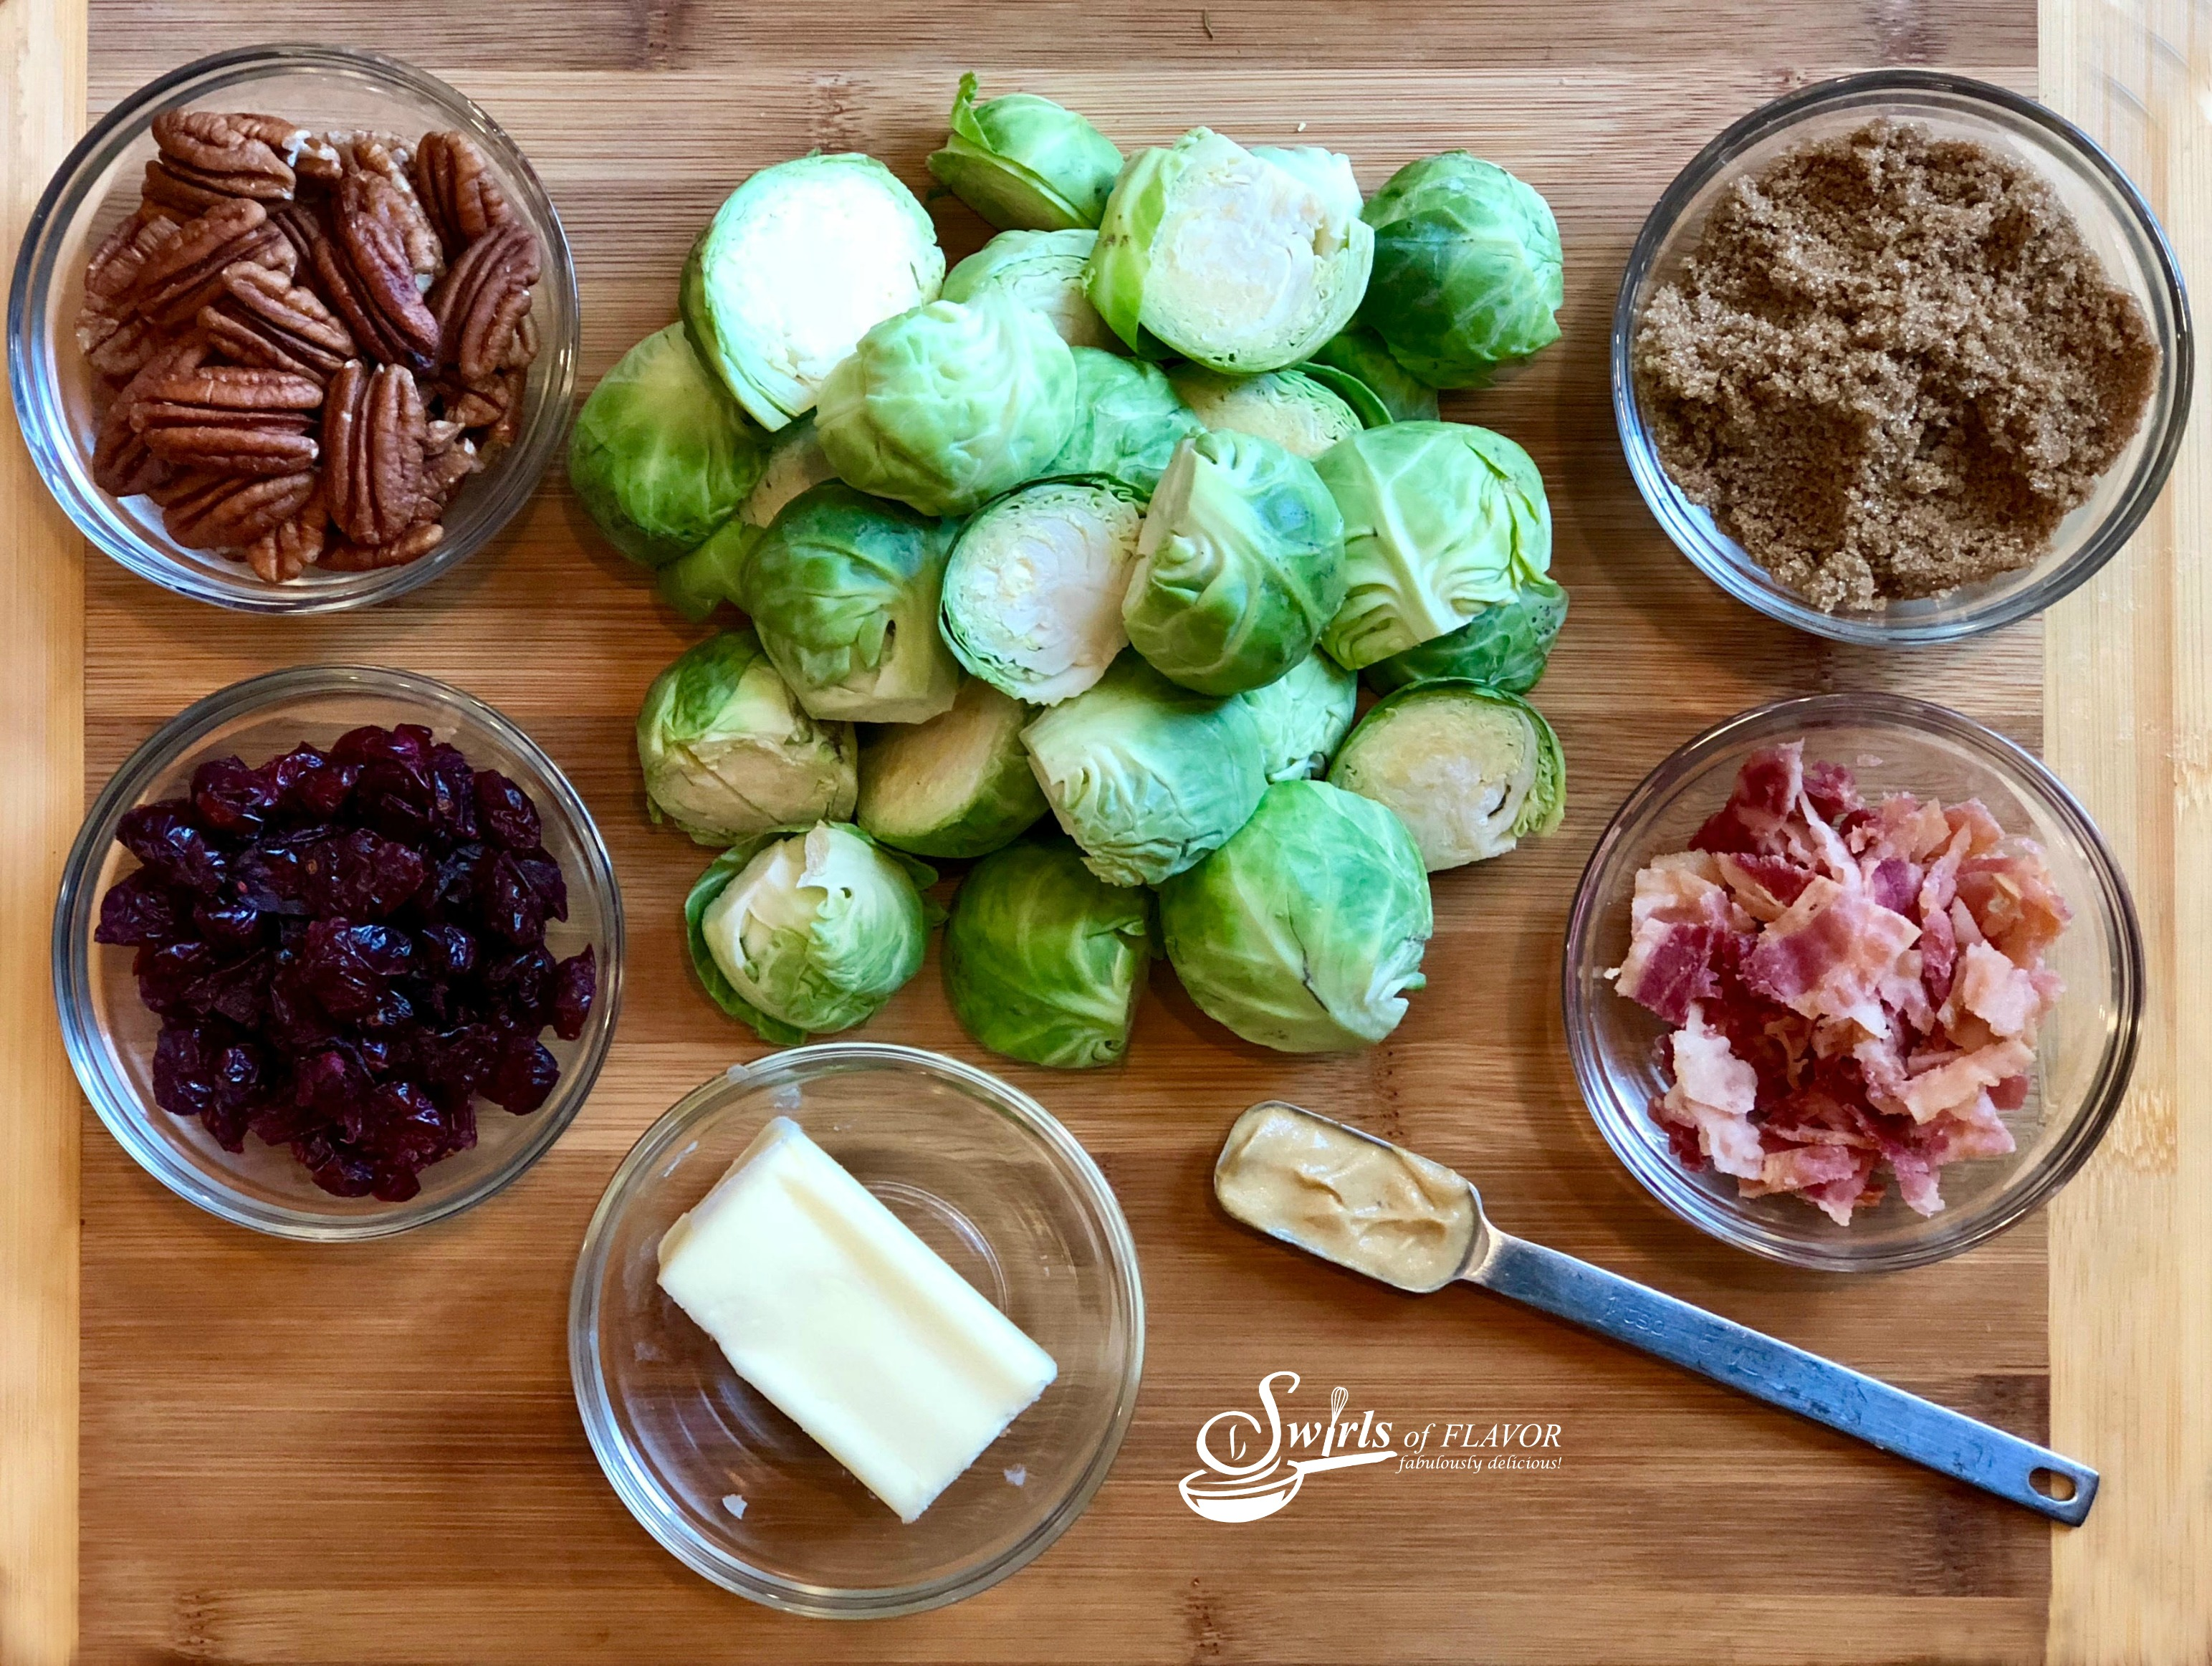 ingredients for Brussel sprouts with bacon